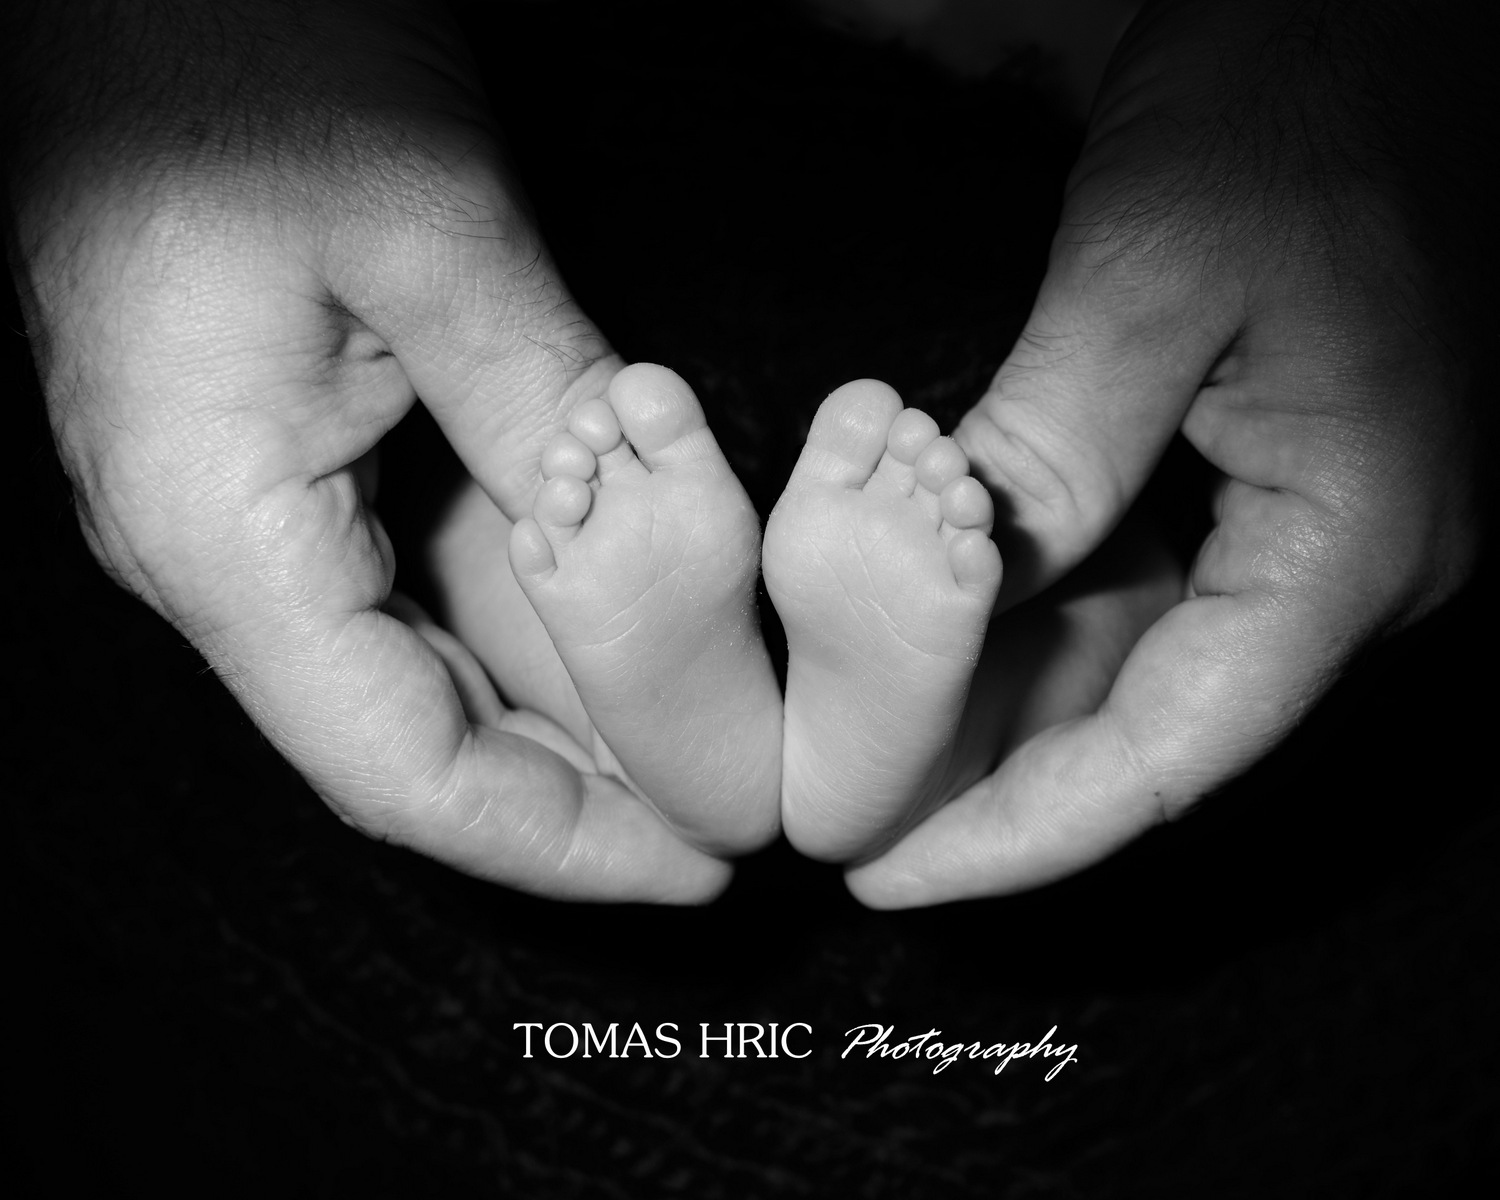 Tomas Hric Photography Newborn photographer in northern virginia mother father holding newborn tiny feet